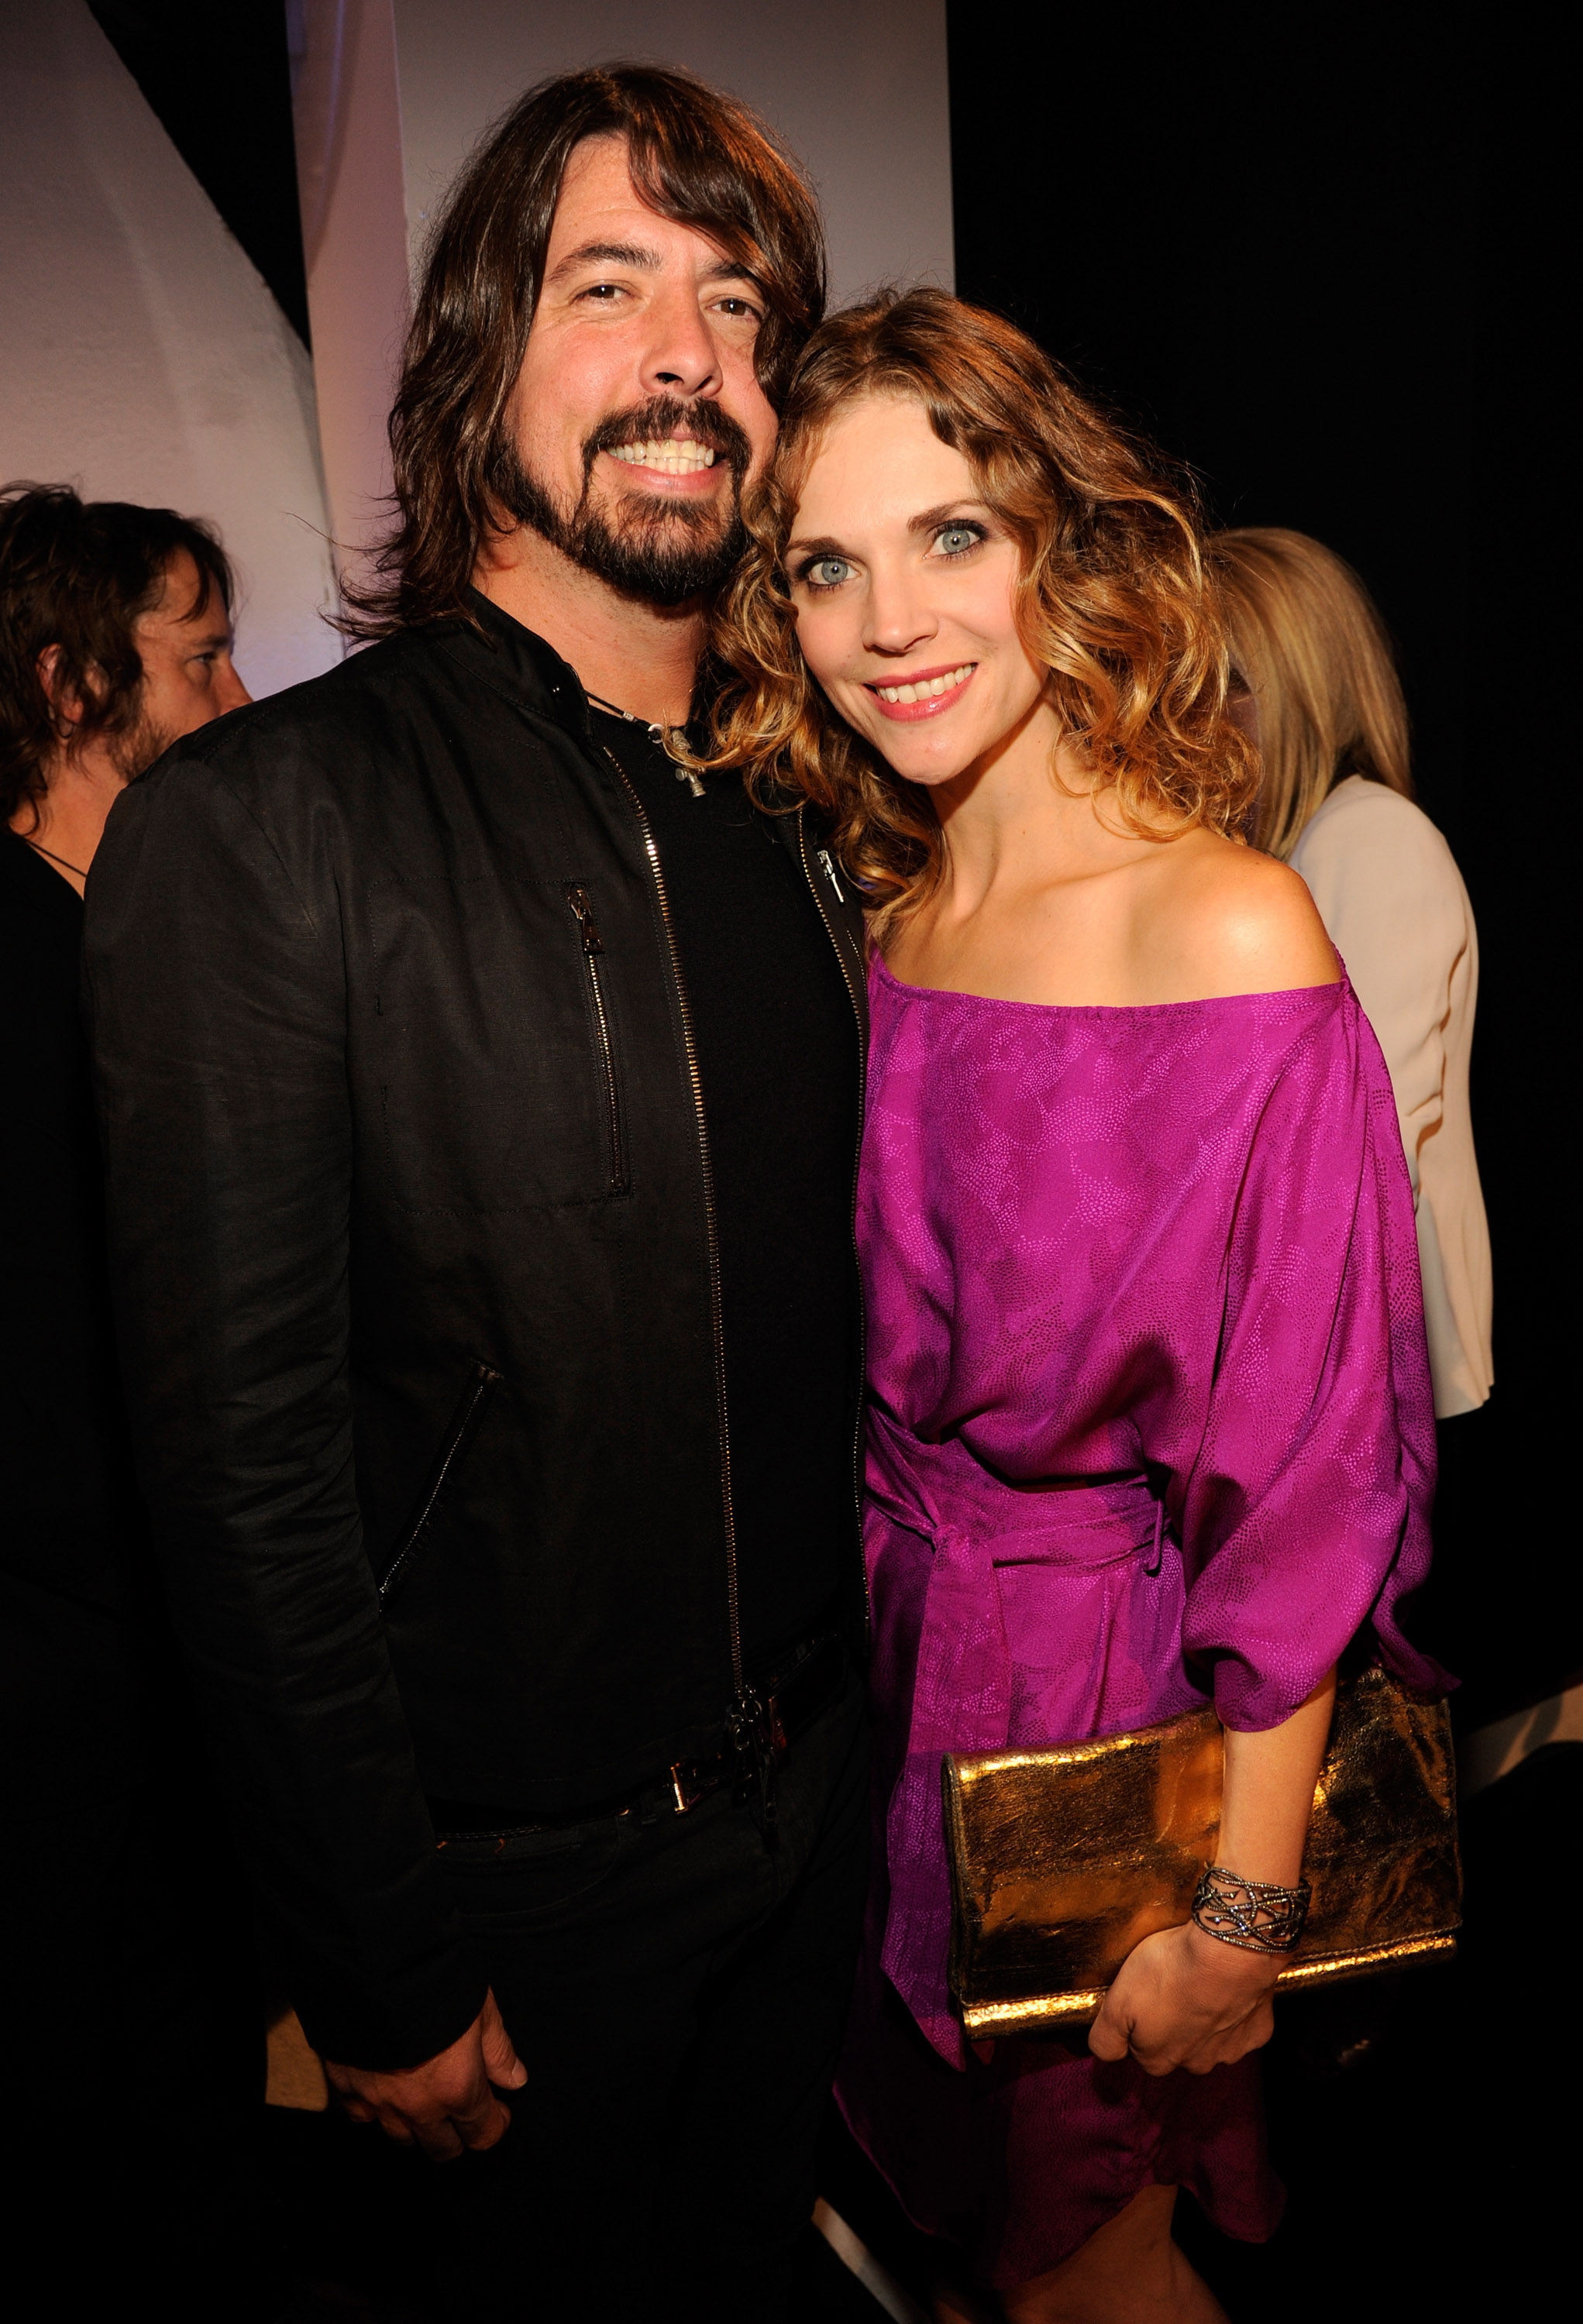 Foo Fighters Dave Grohl And Wife Jordyn Blum Arrived At